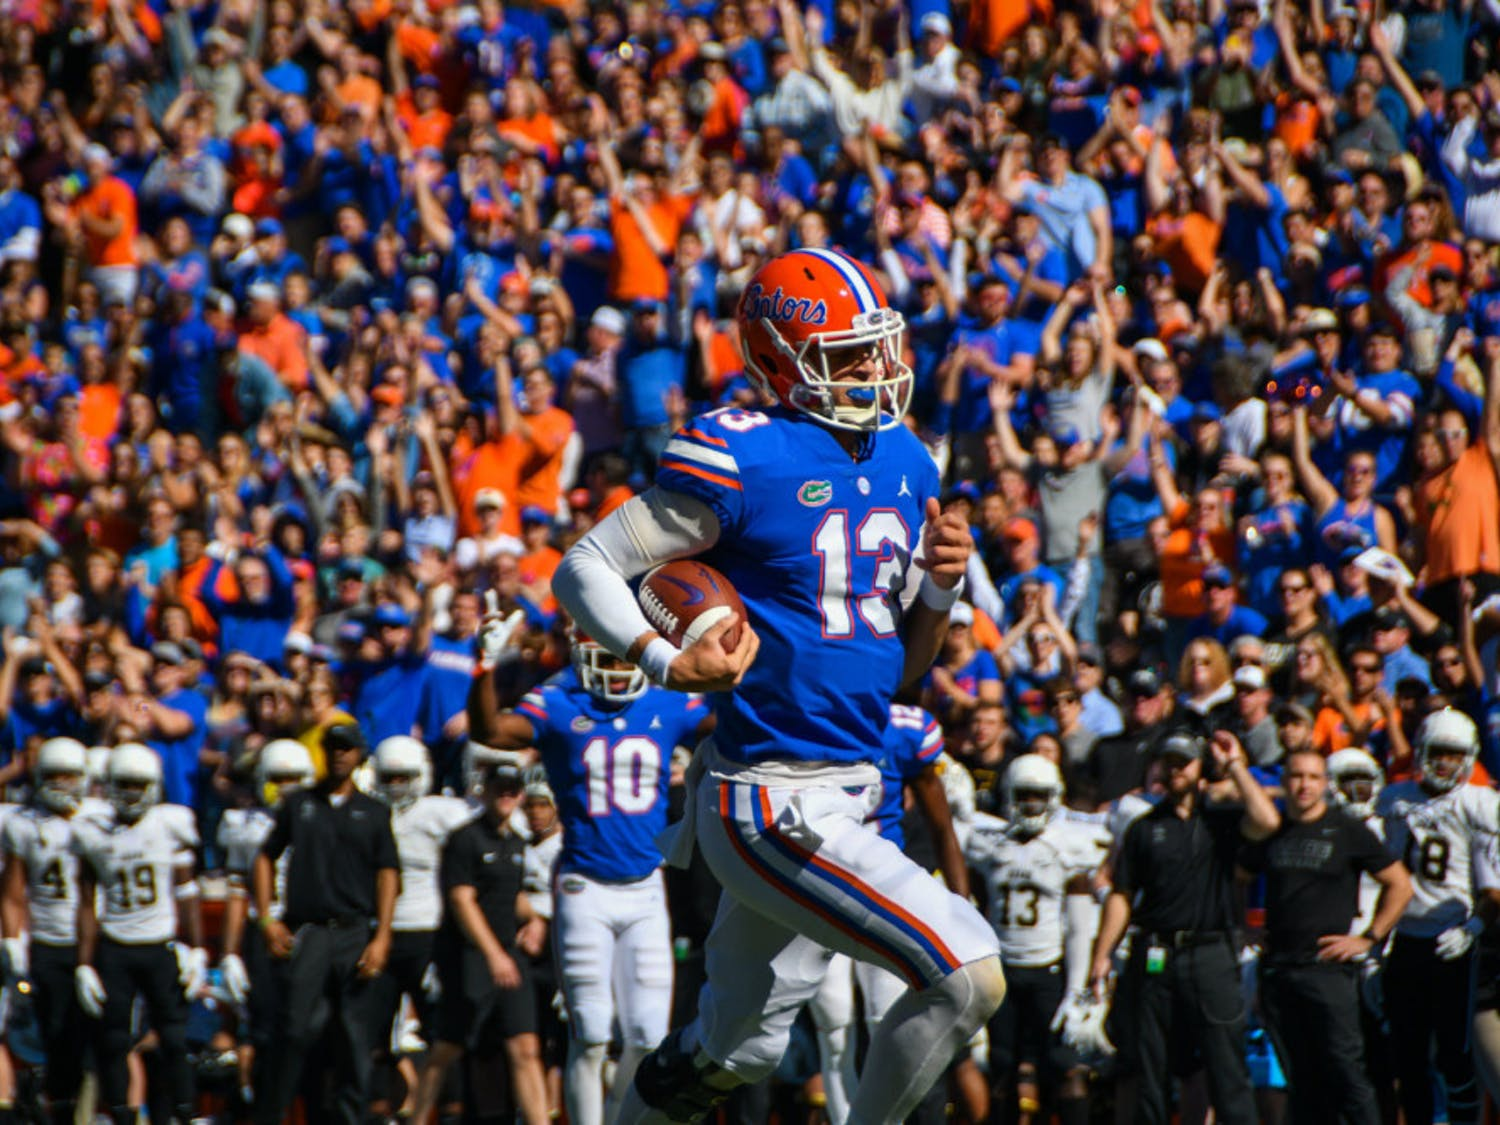 Gators quarterback Feleipe Franks has thrown for over 680 yards with seven touchdowns and zero turnovers over the last three games.